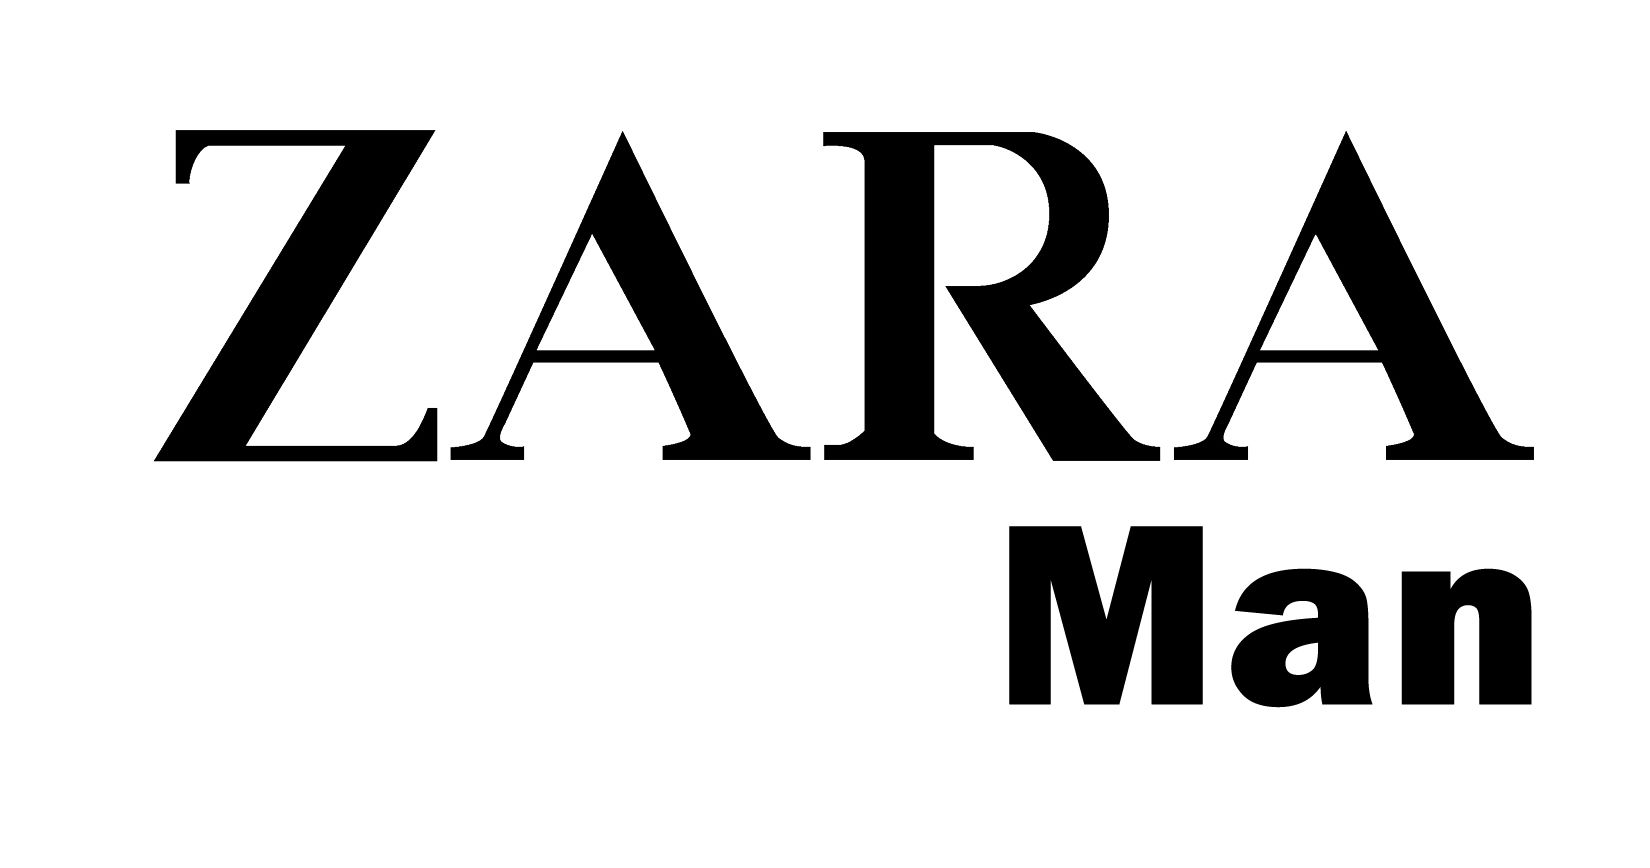 Zara Logo - Zara Logo, Zara Symbol, Meaning, History and Evolution